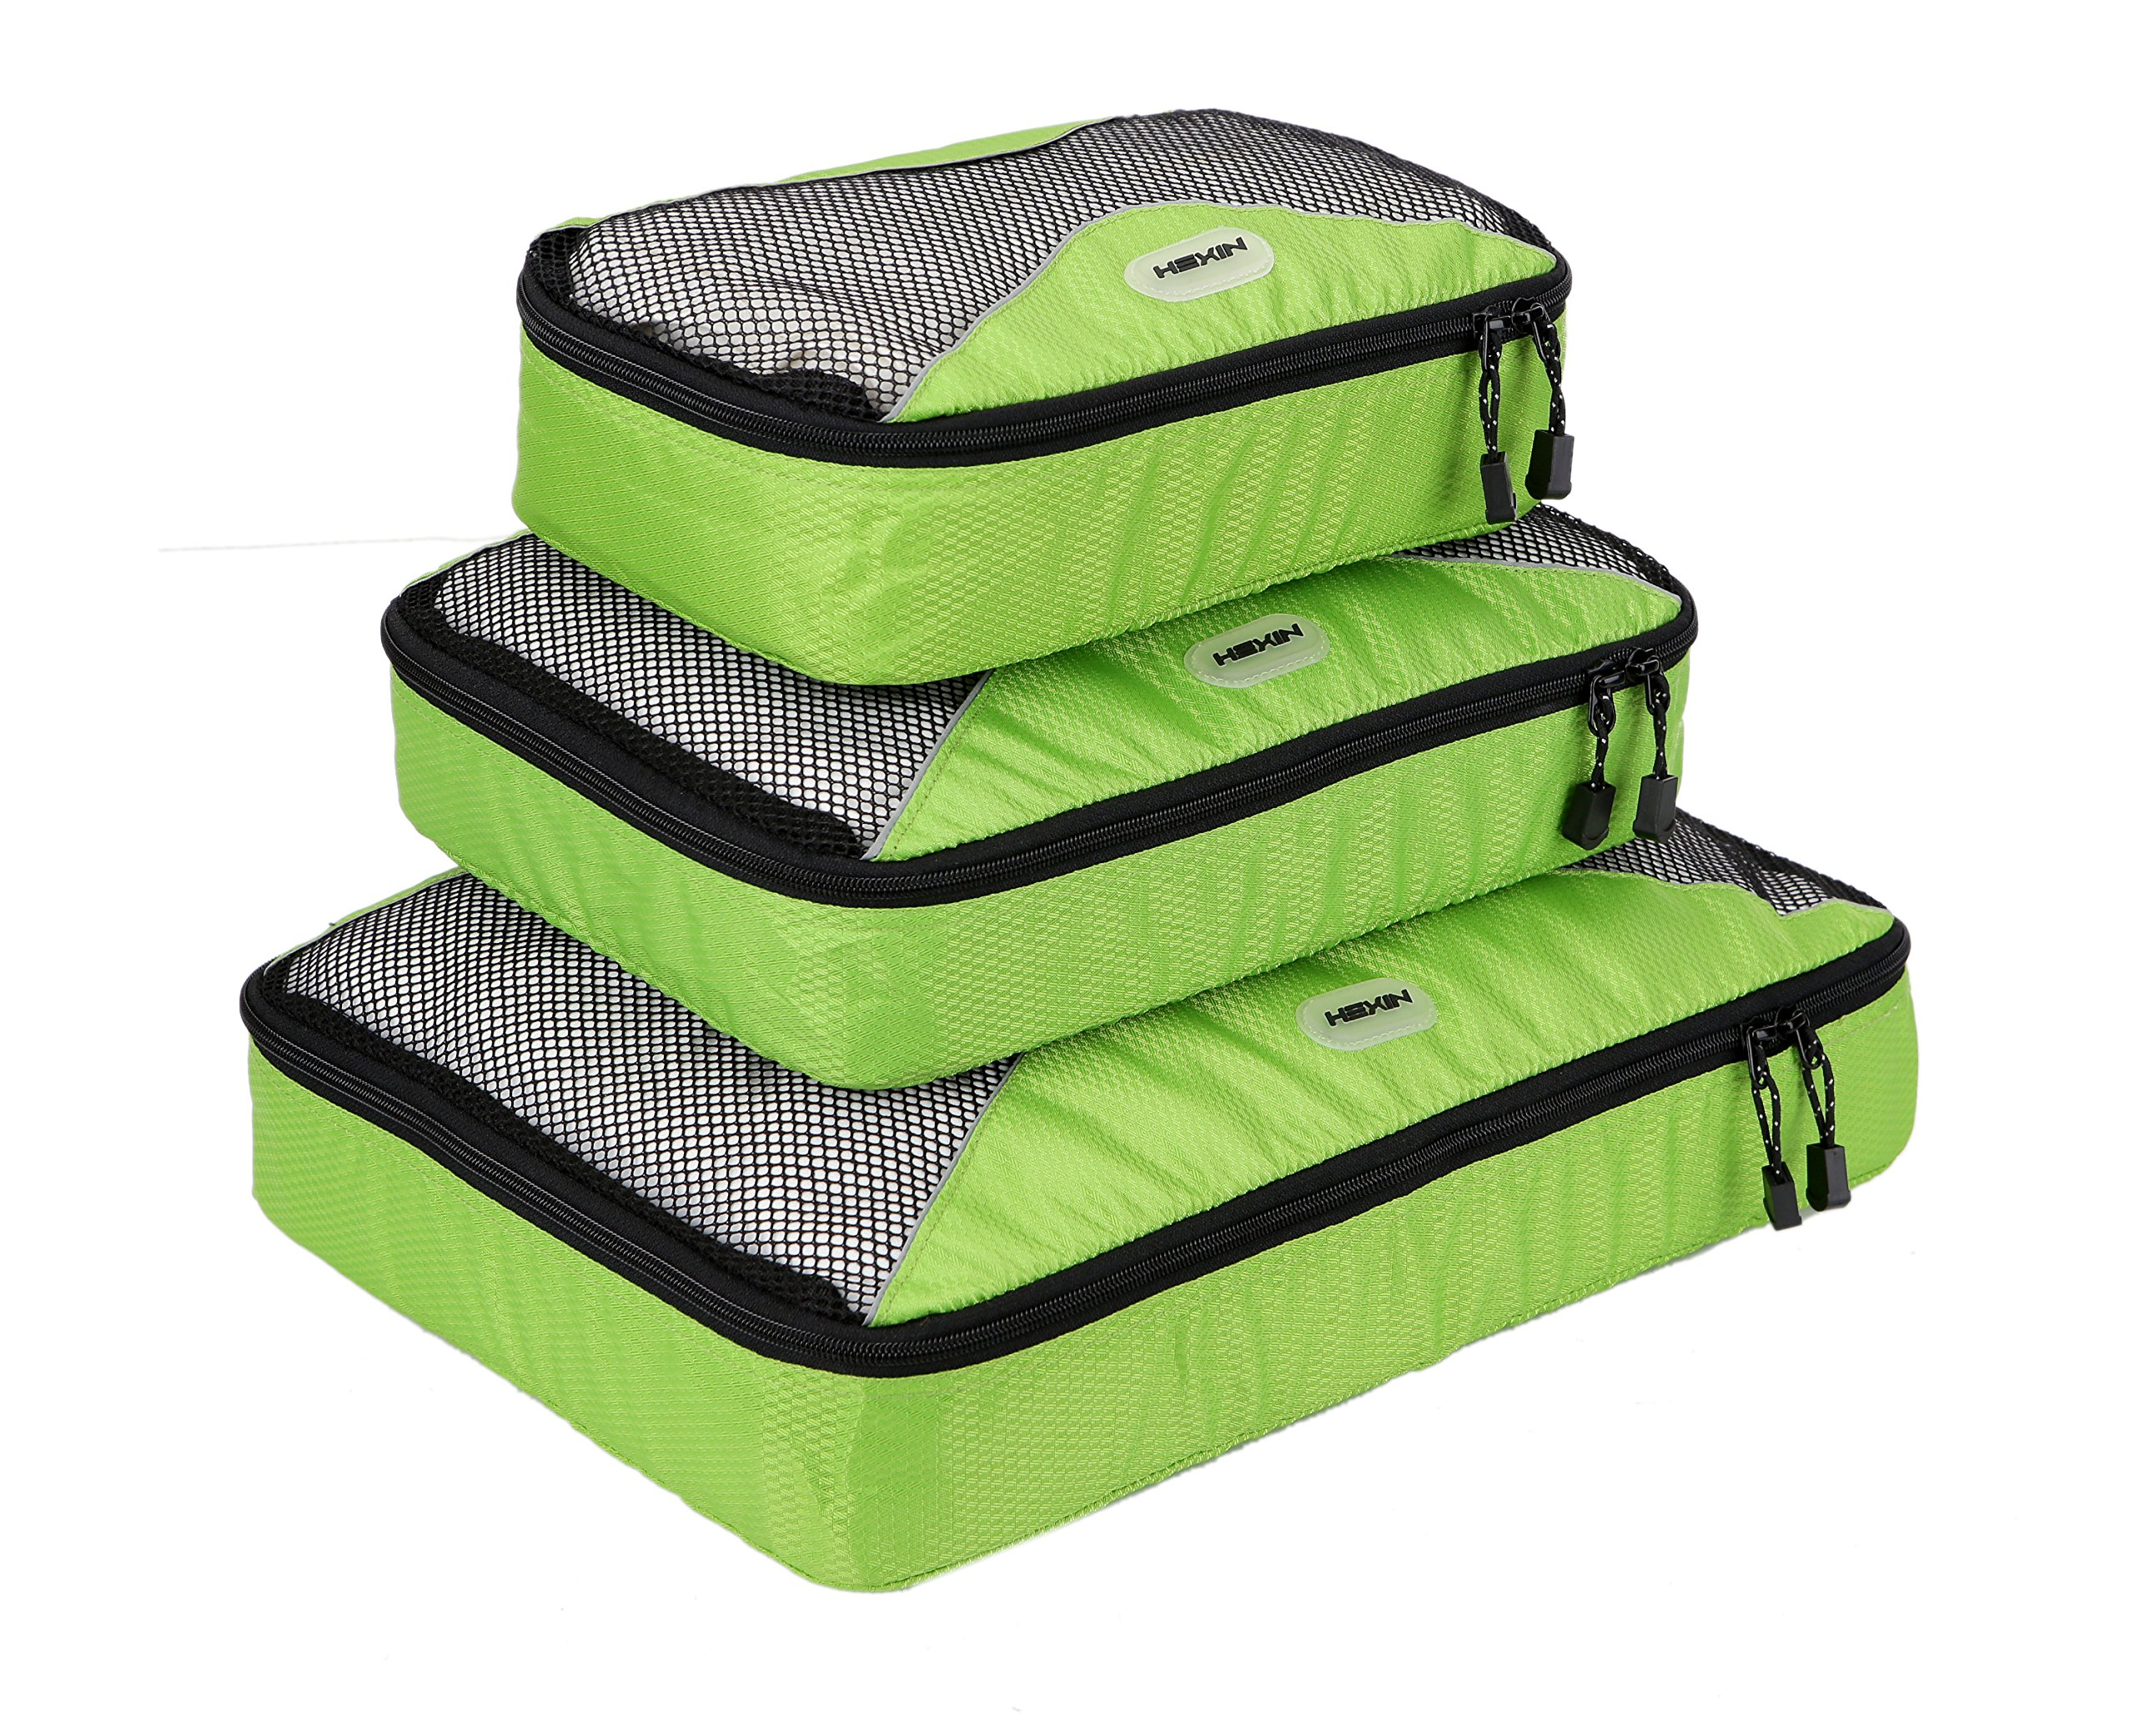 HEXIN Unisex 3pcs Travel Organizers Packing Cubes Organizers